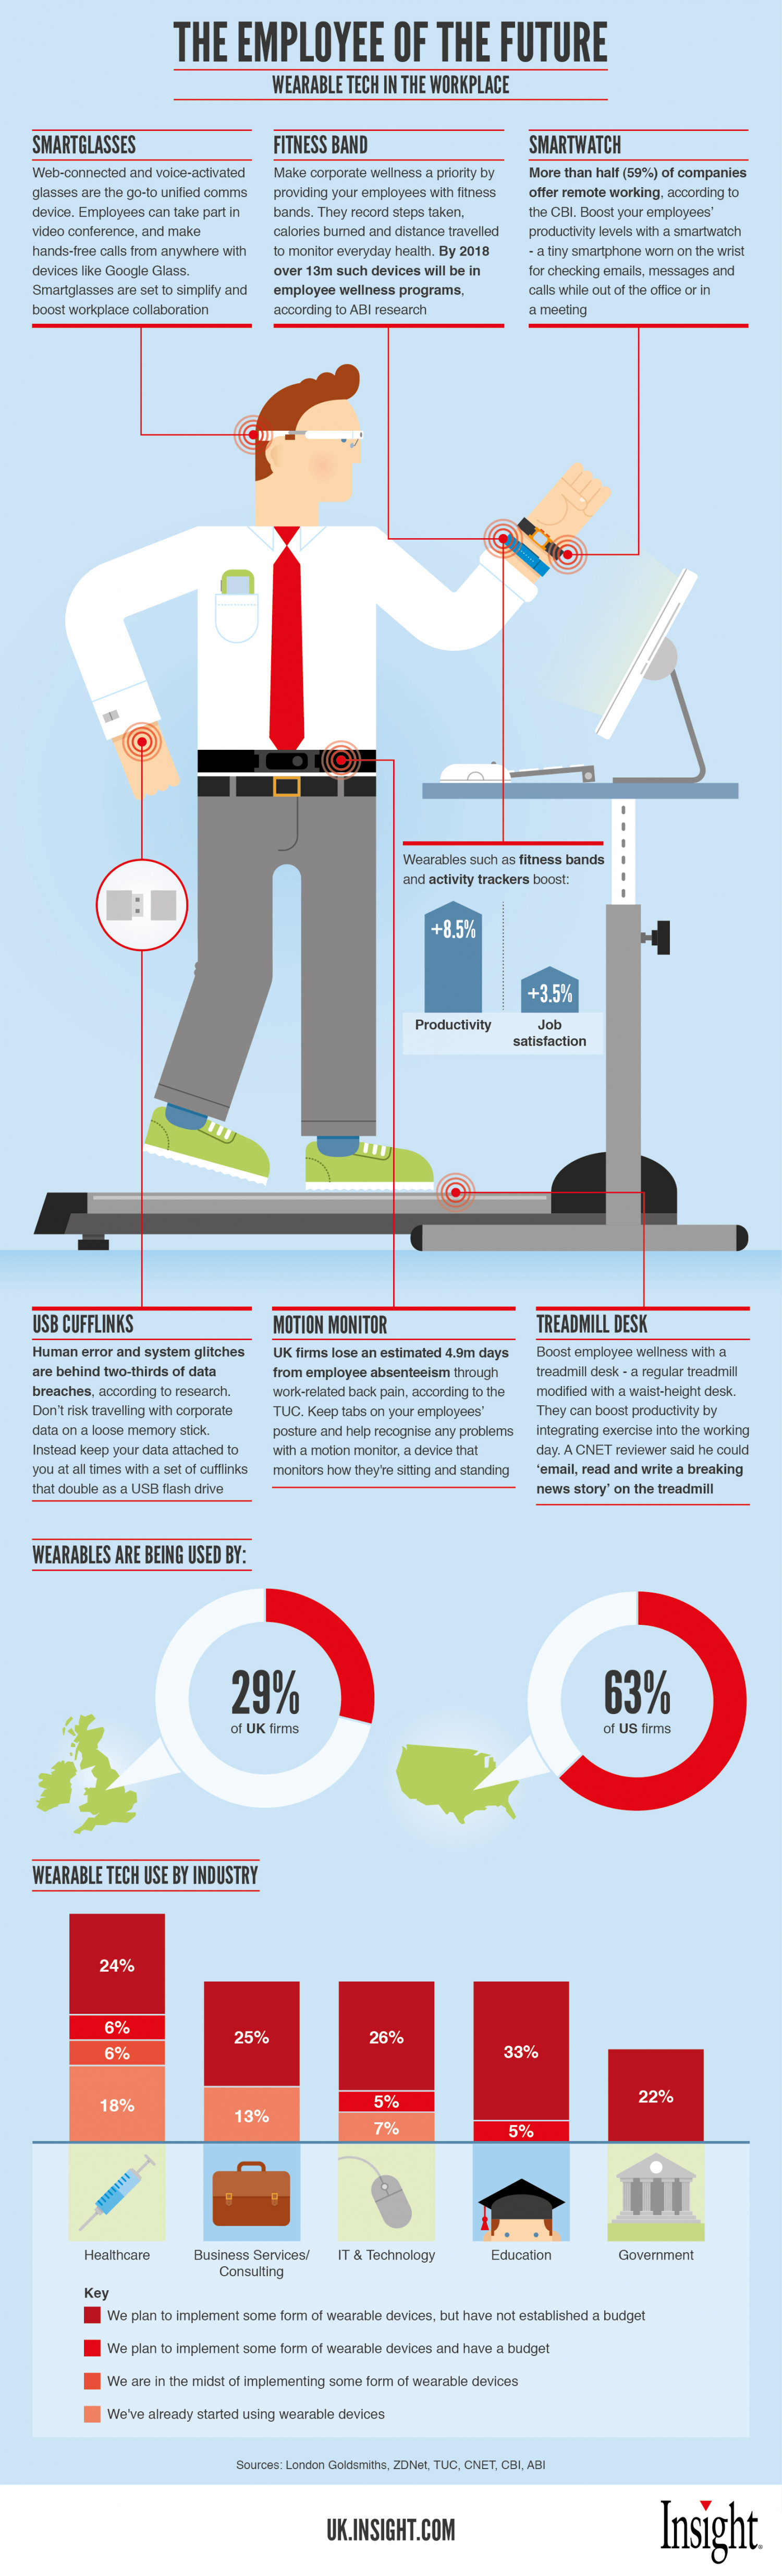 The Employee of the Future Infographic